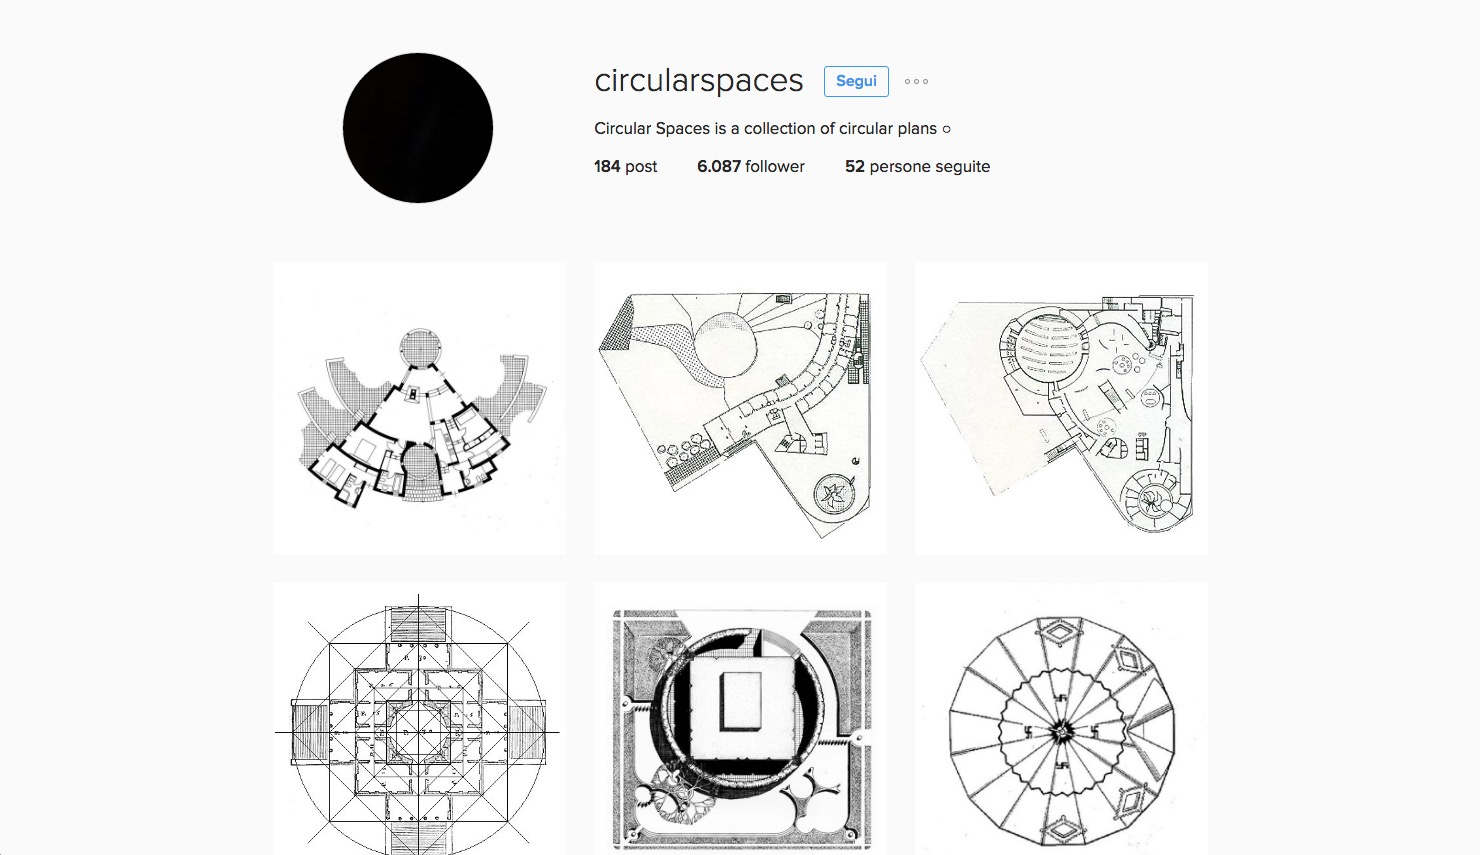 circularspaces